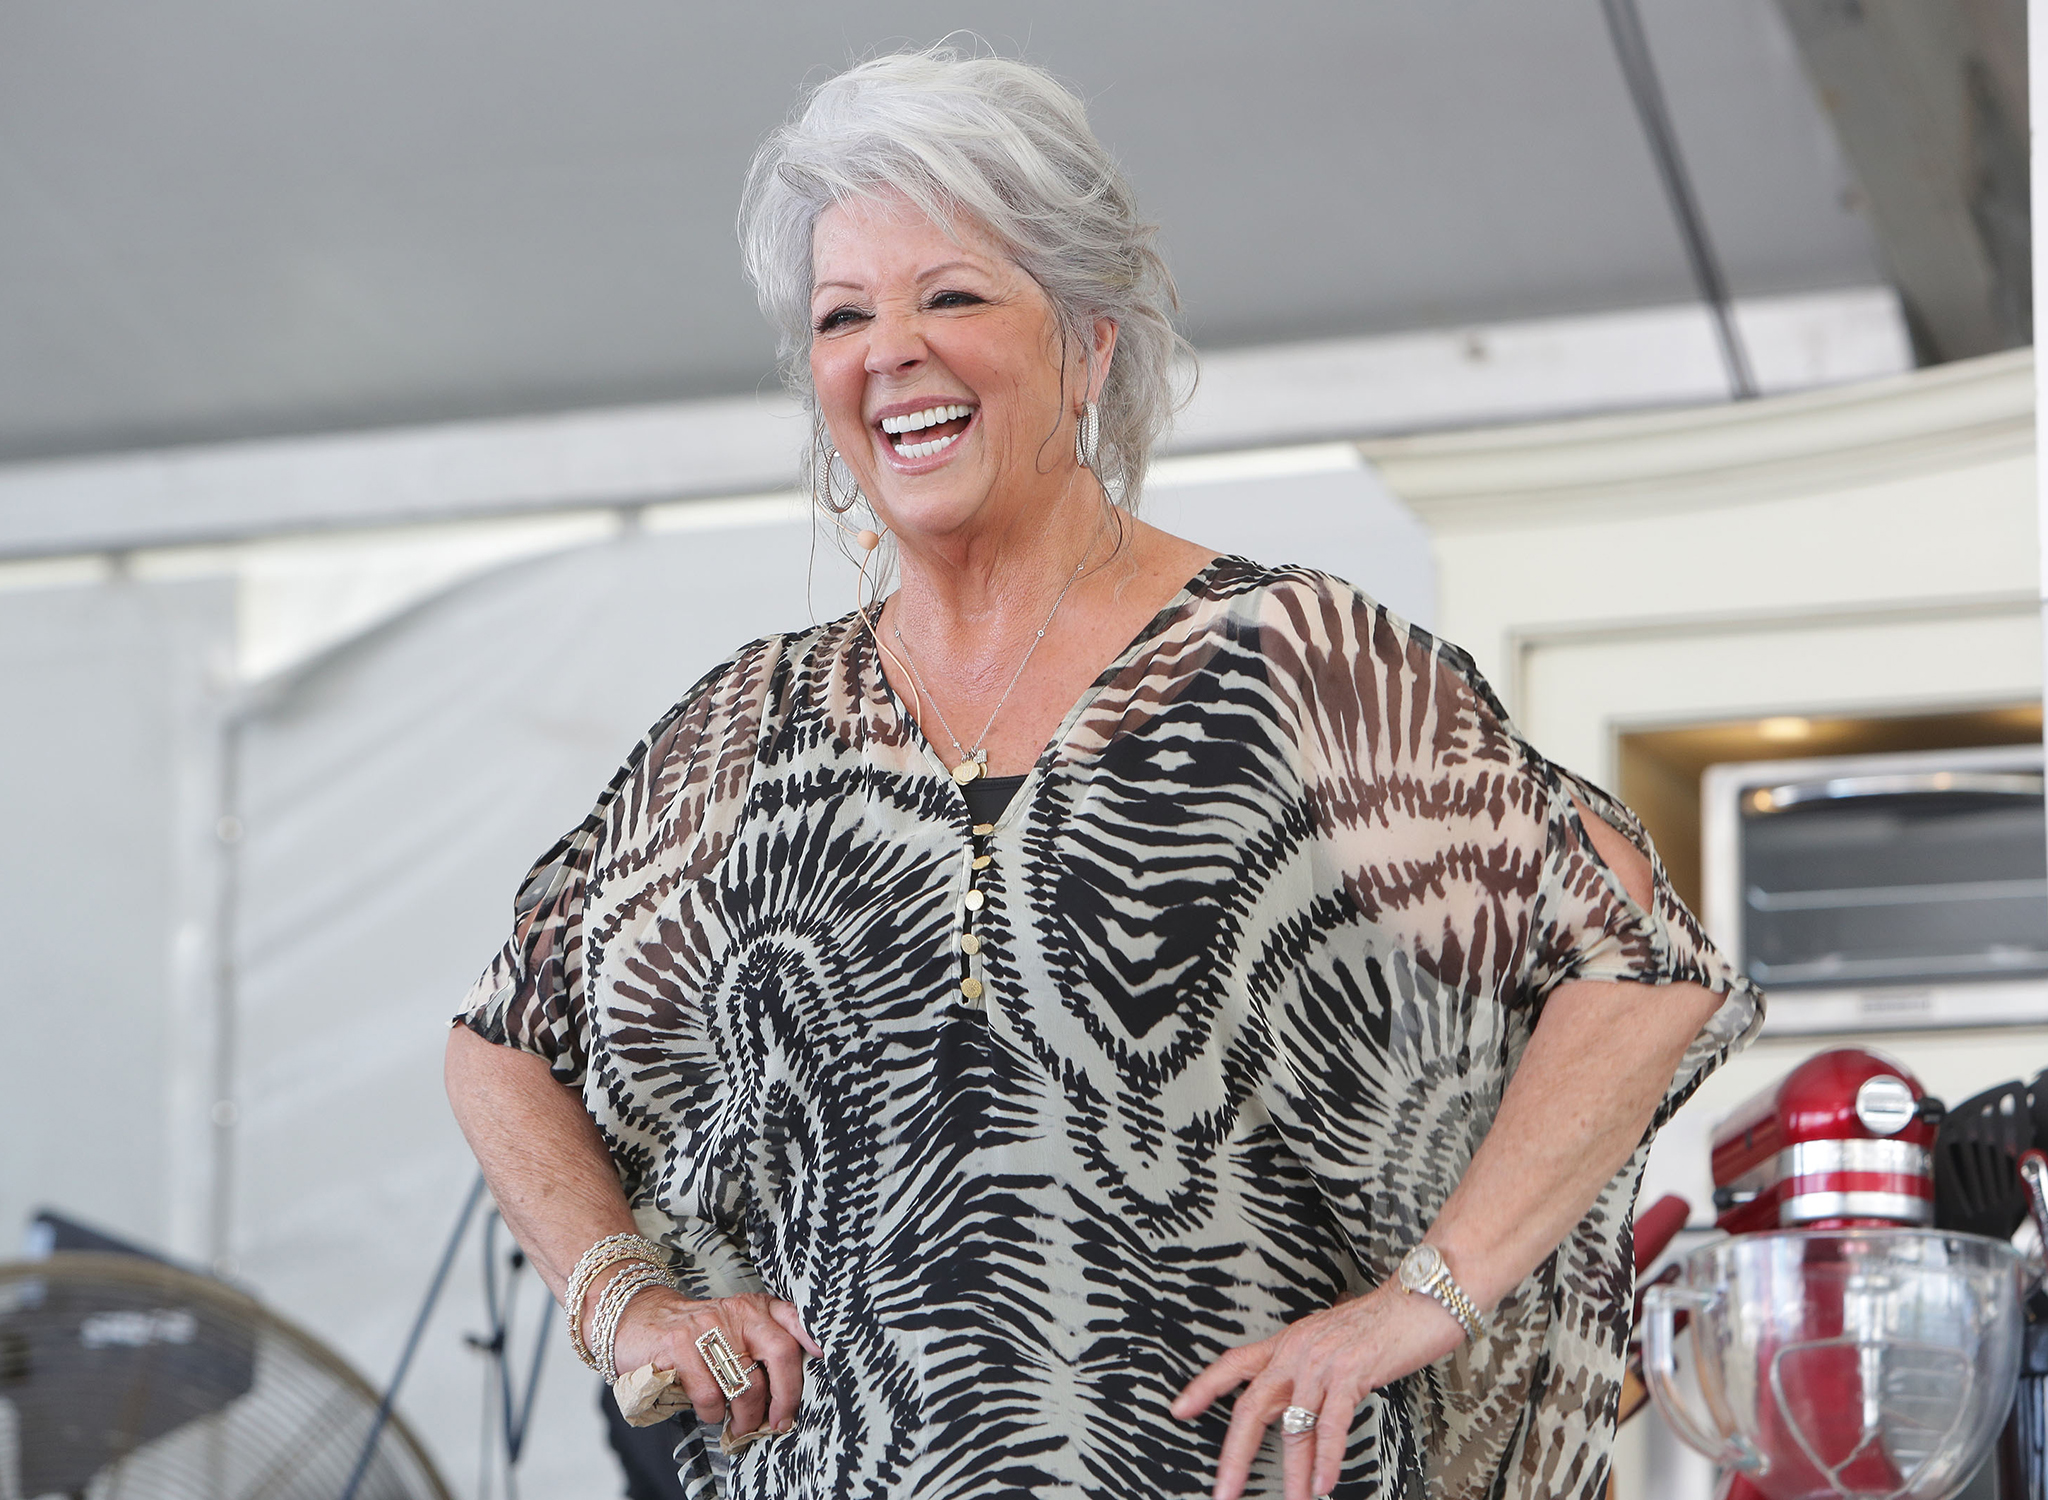 Paula Deen, February 2013 (Alexander Tamargo/Getty Images)